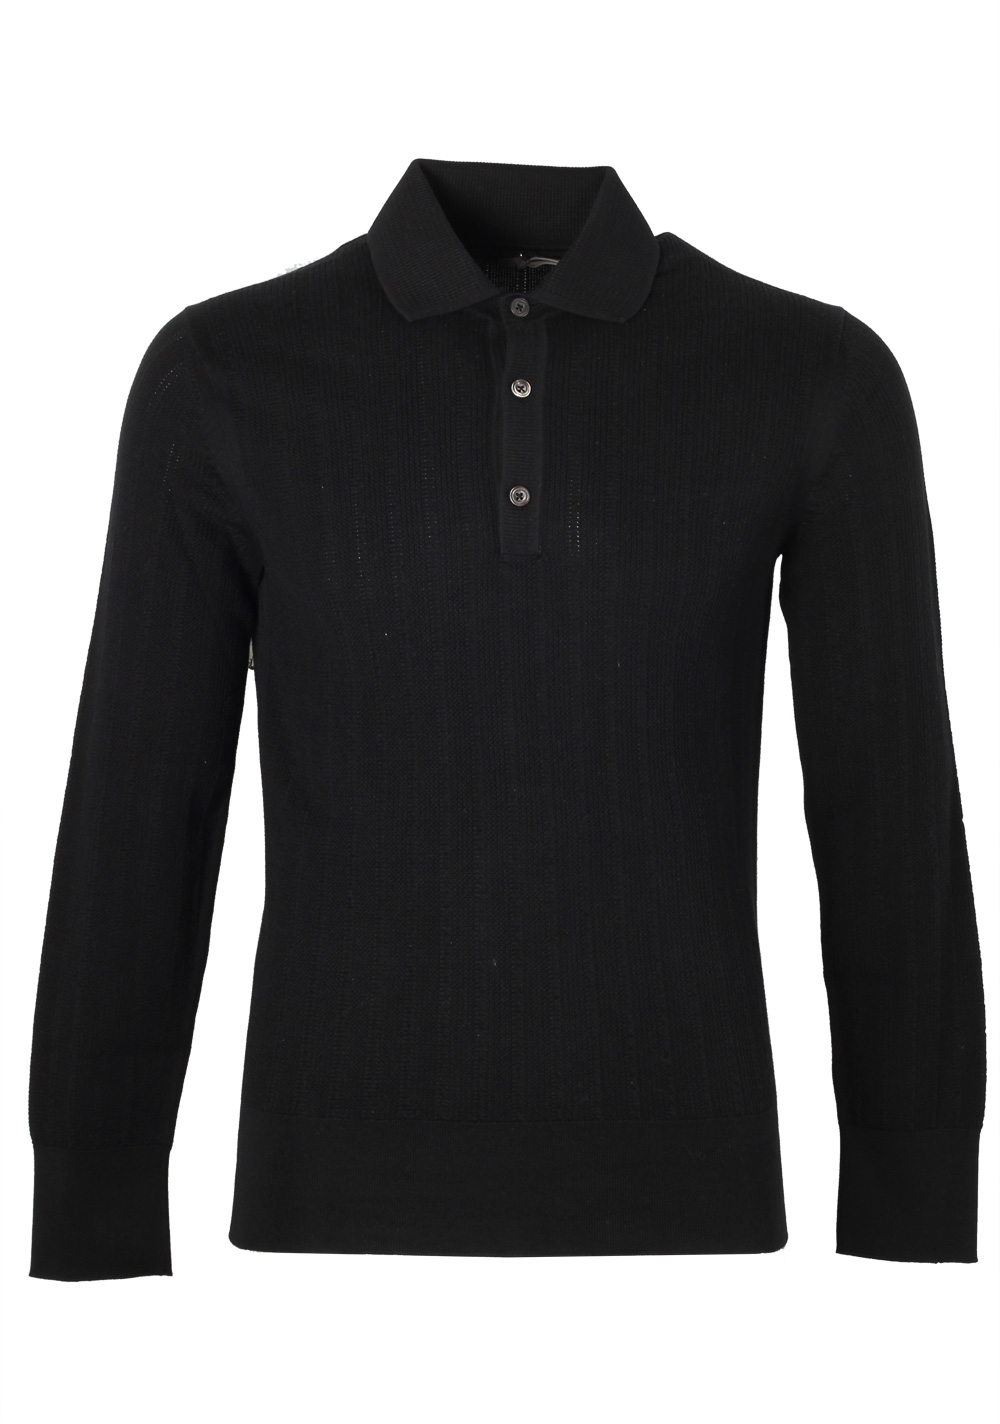 TOM FORD Black Long Sleeve Polo Sweater Size 48 / 38R U.S. In Cotton   Costume Limité